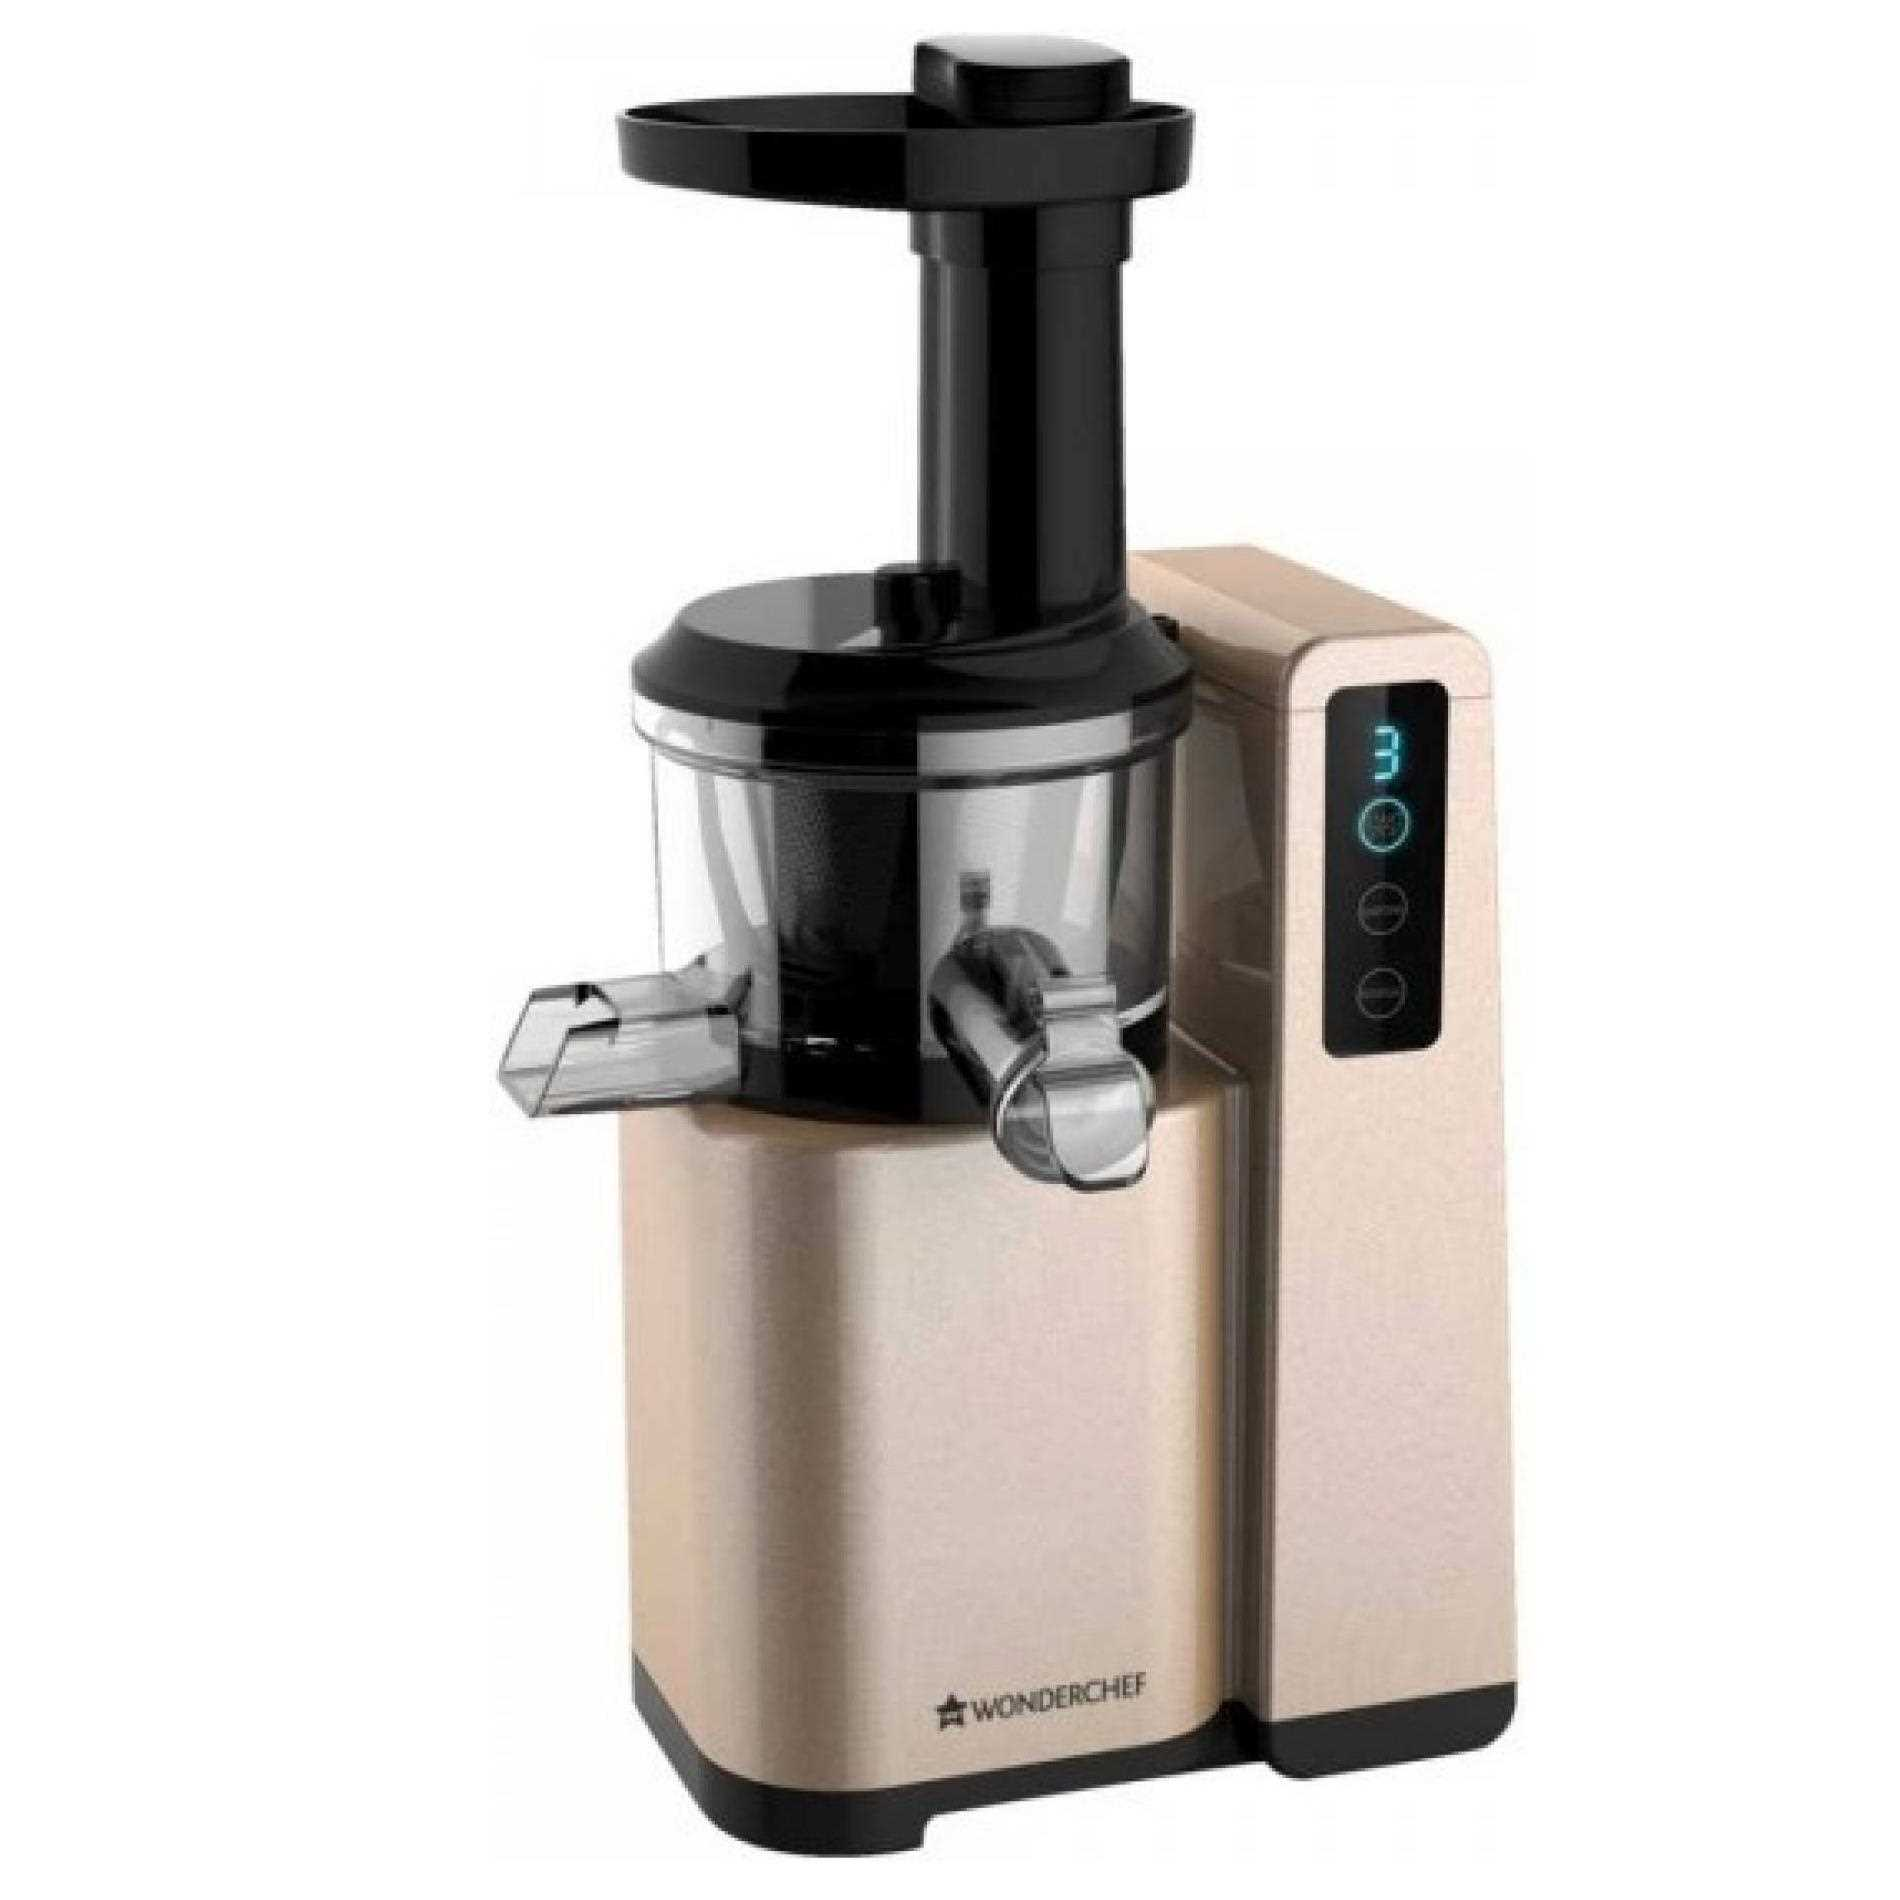 Wonderchef Cold Press Slow Juicer Digital Review : Wonderchef H6001 150 W Juicer Price in India 14 Feb 2017